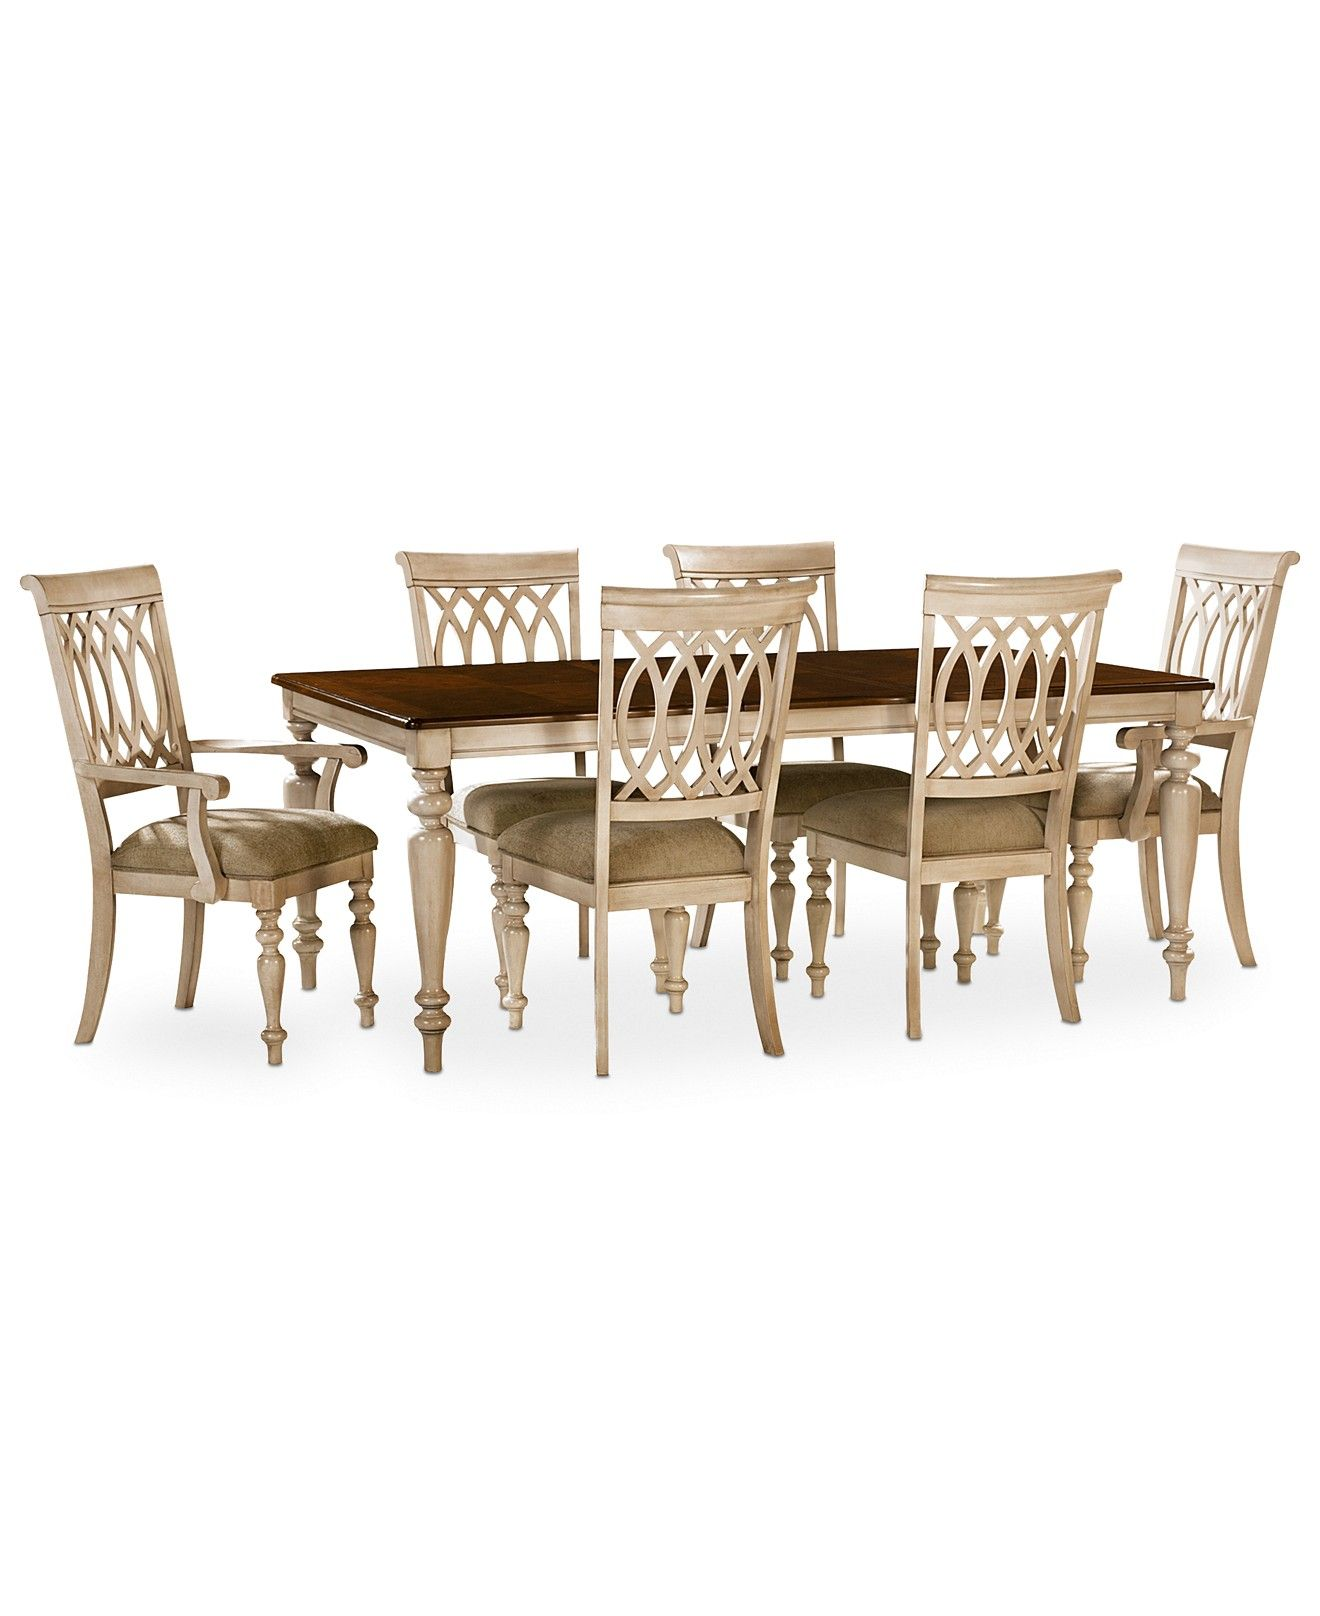 Dovewood Dining Room Furniture, 7 Piece Set (Table, 4 Side Chairs ...